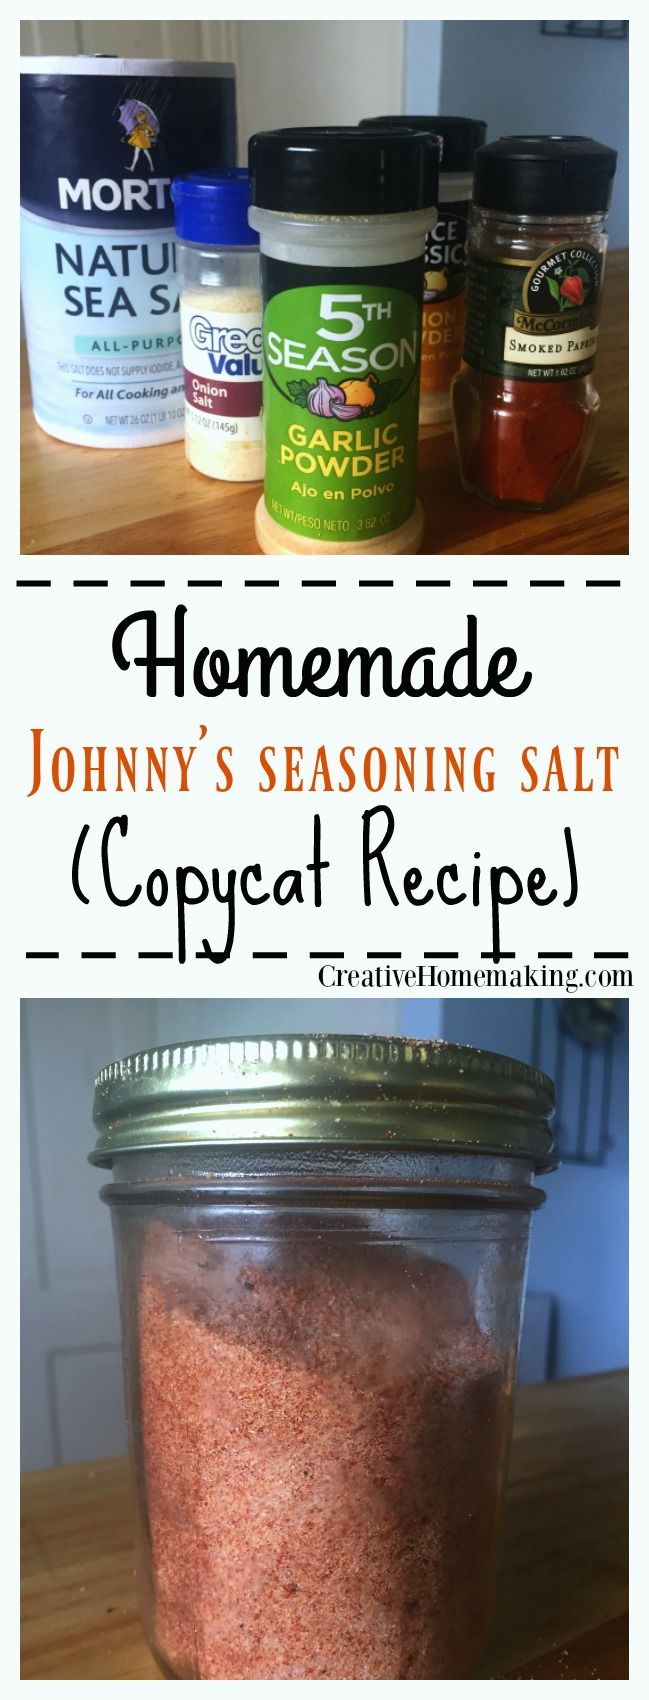 If your family loves Johnny's seasoning salt then give this easy MSG-free recipe a try.